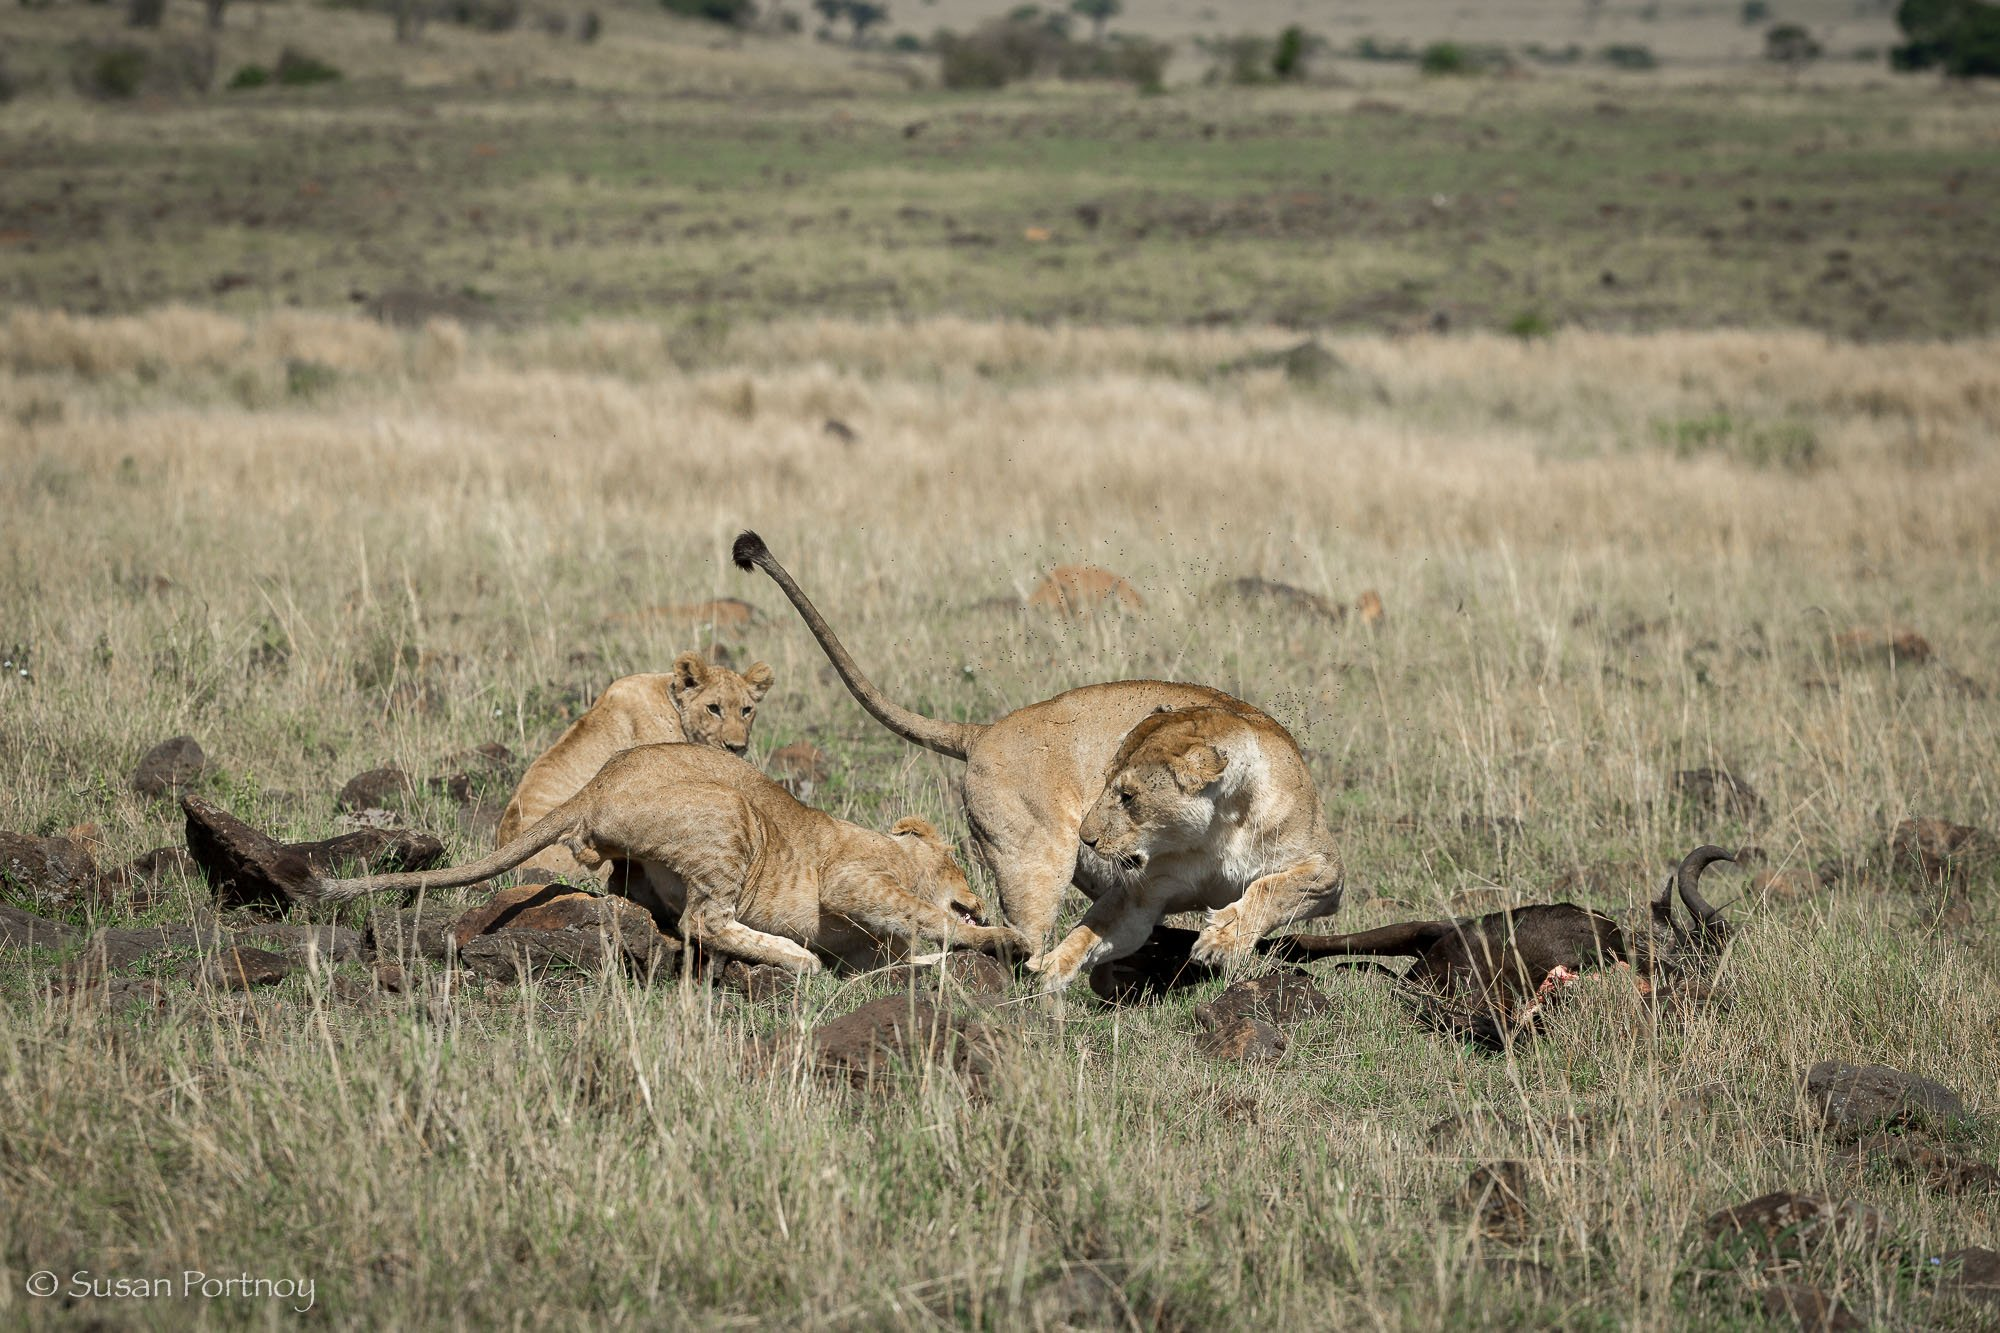 Lion fights with cub over wildebeest carcass on the Masai Mara, Kenya